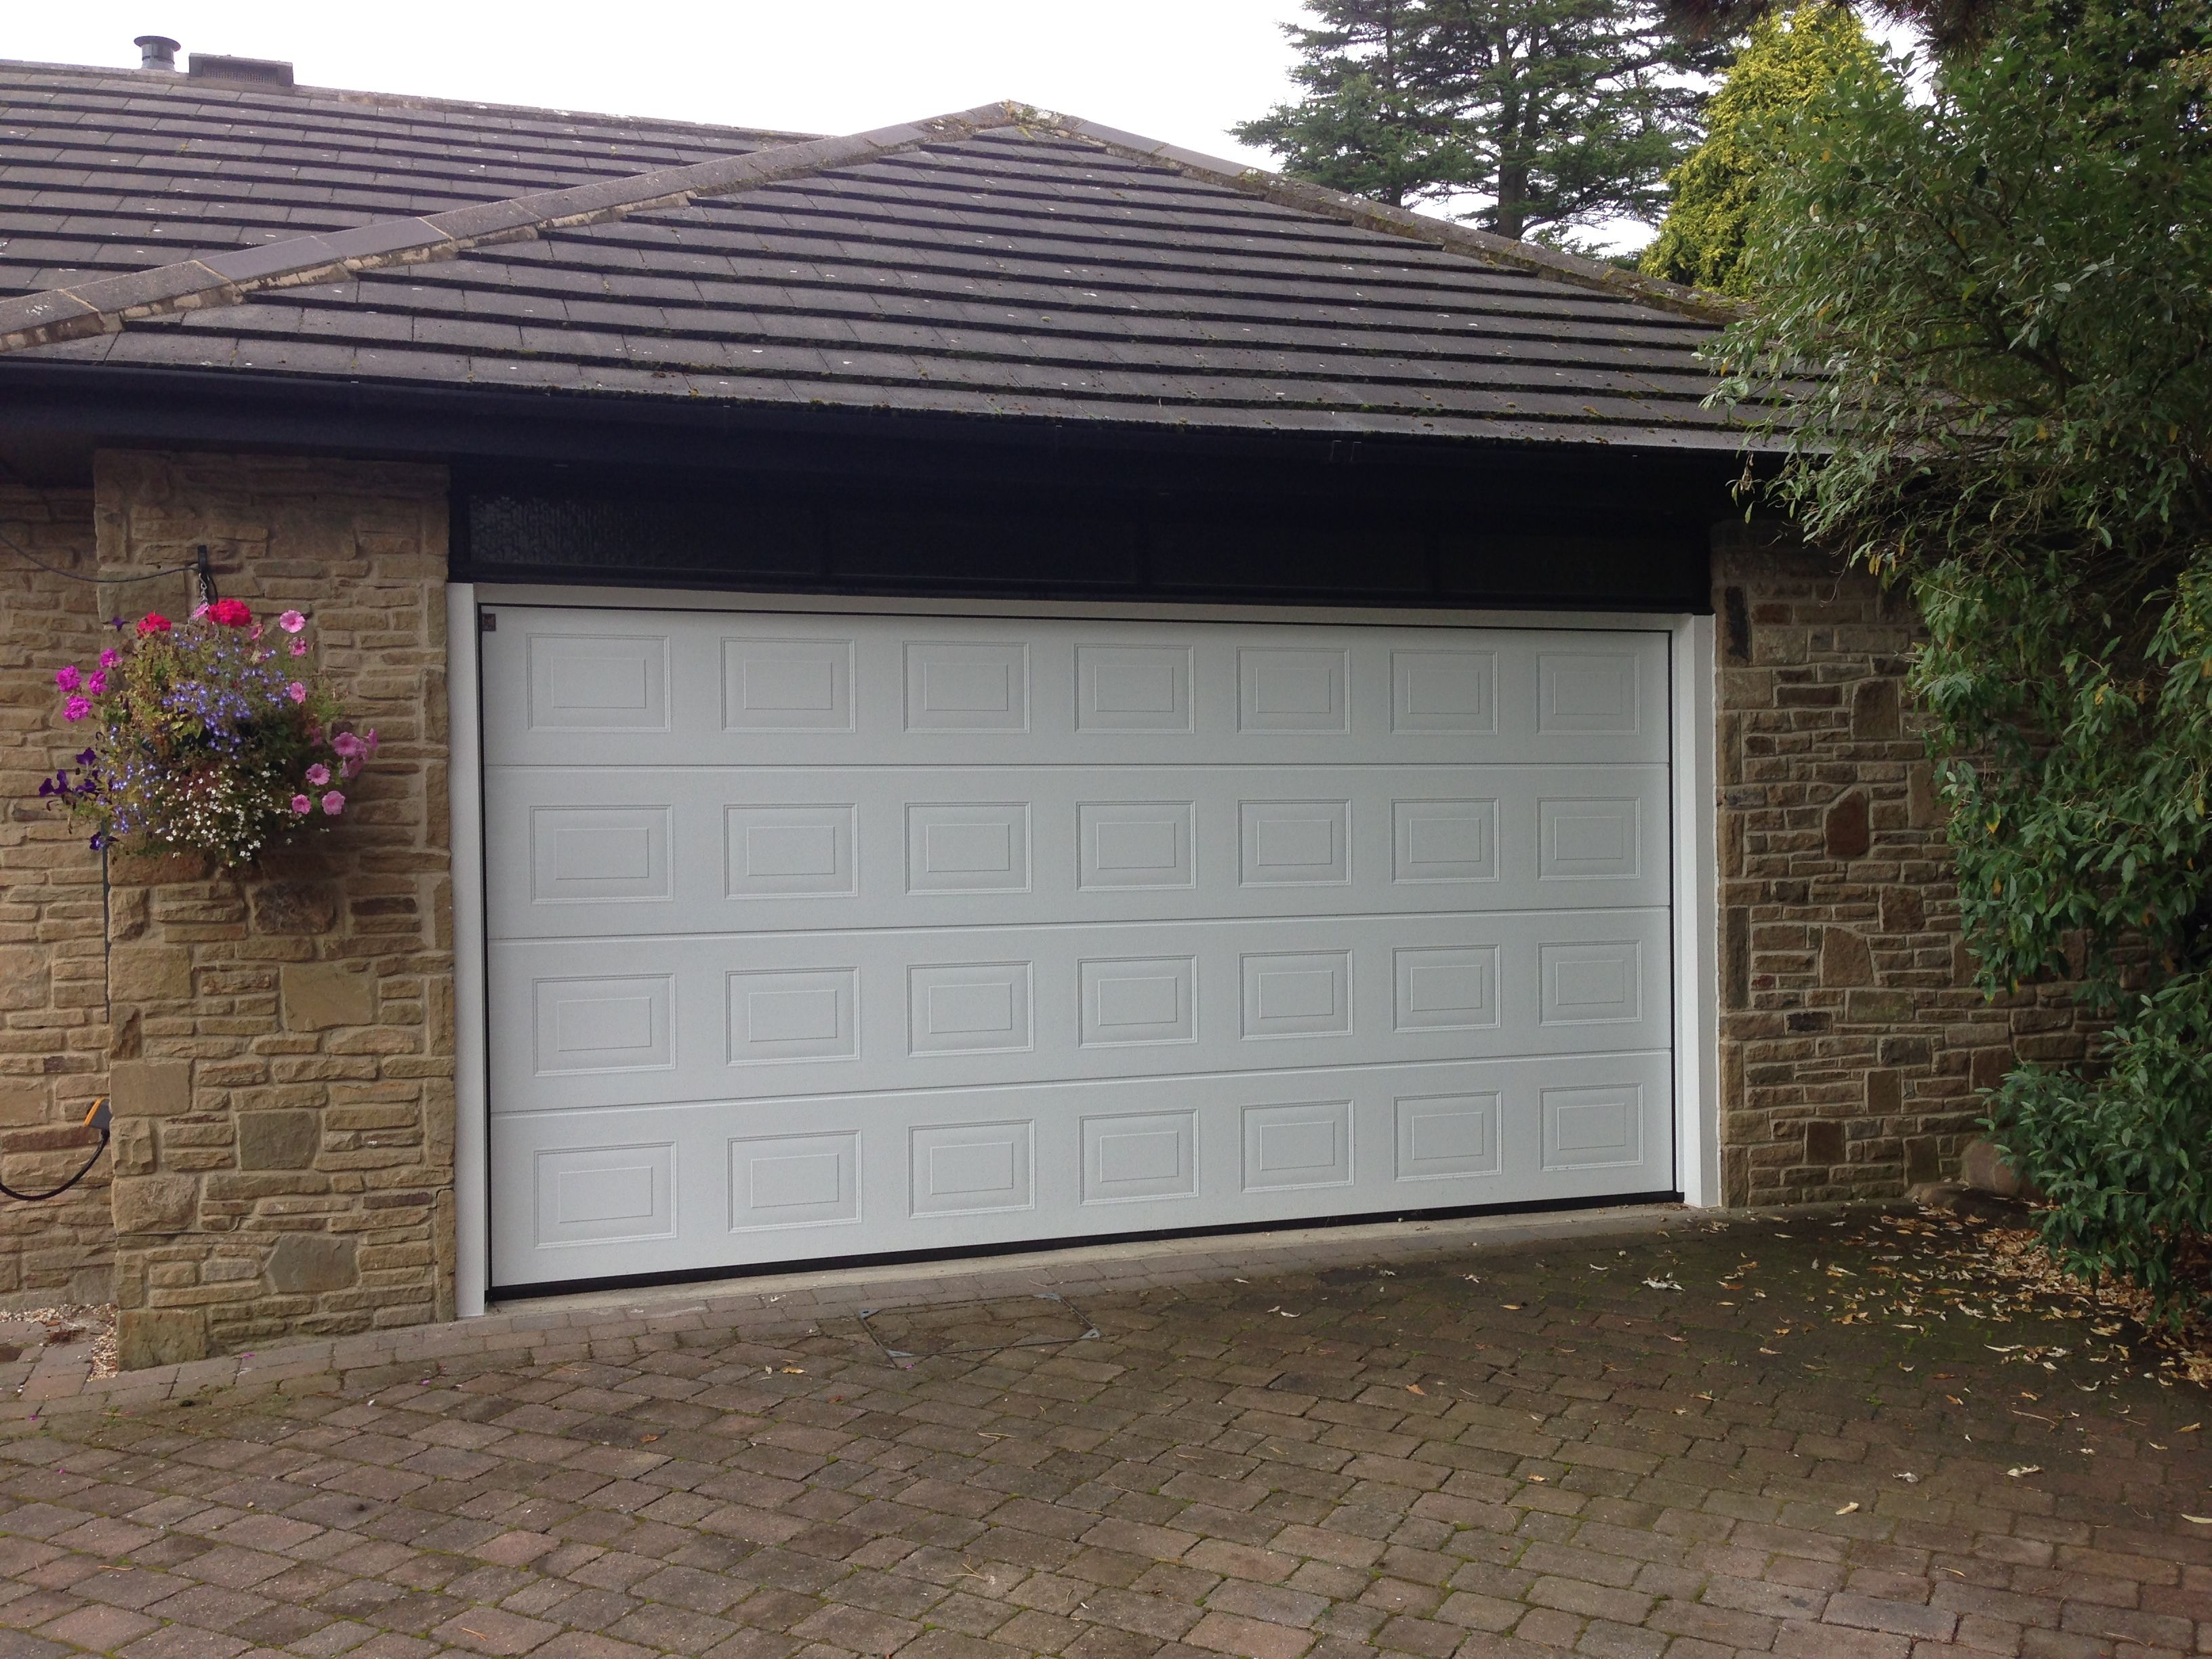 Hormann Lpu40 Insulated Sectional Garage Door In White With